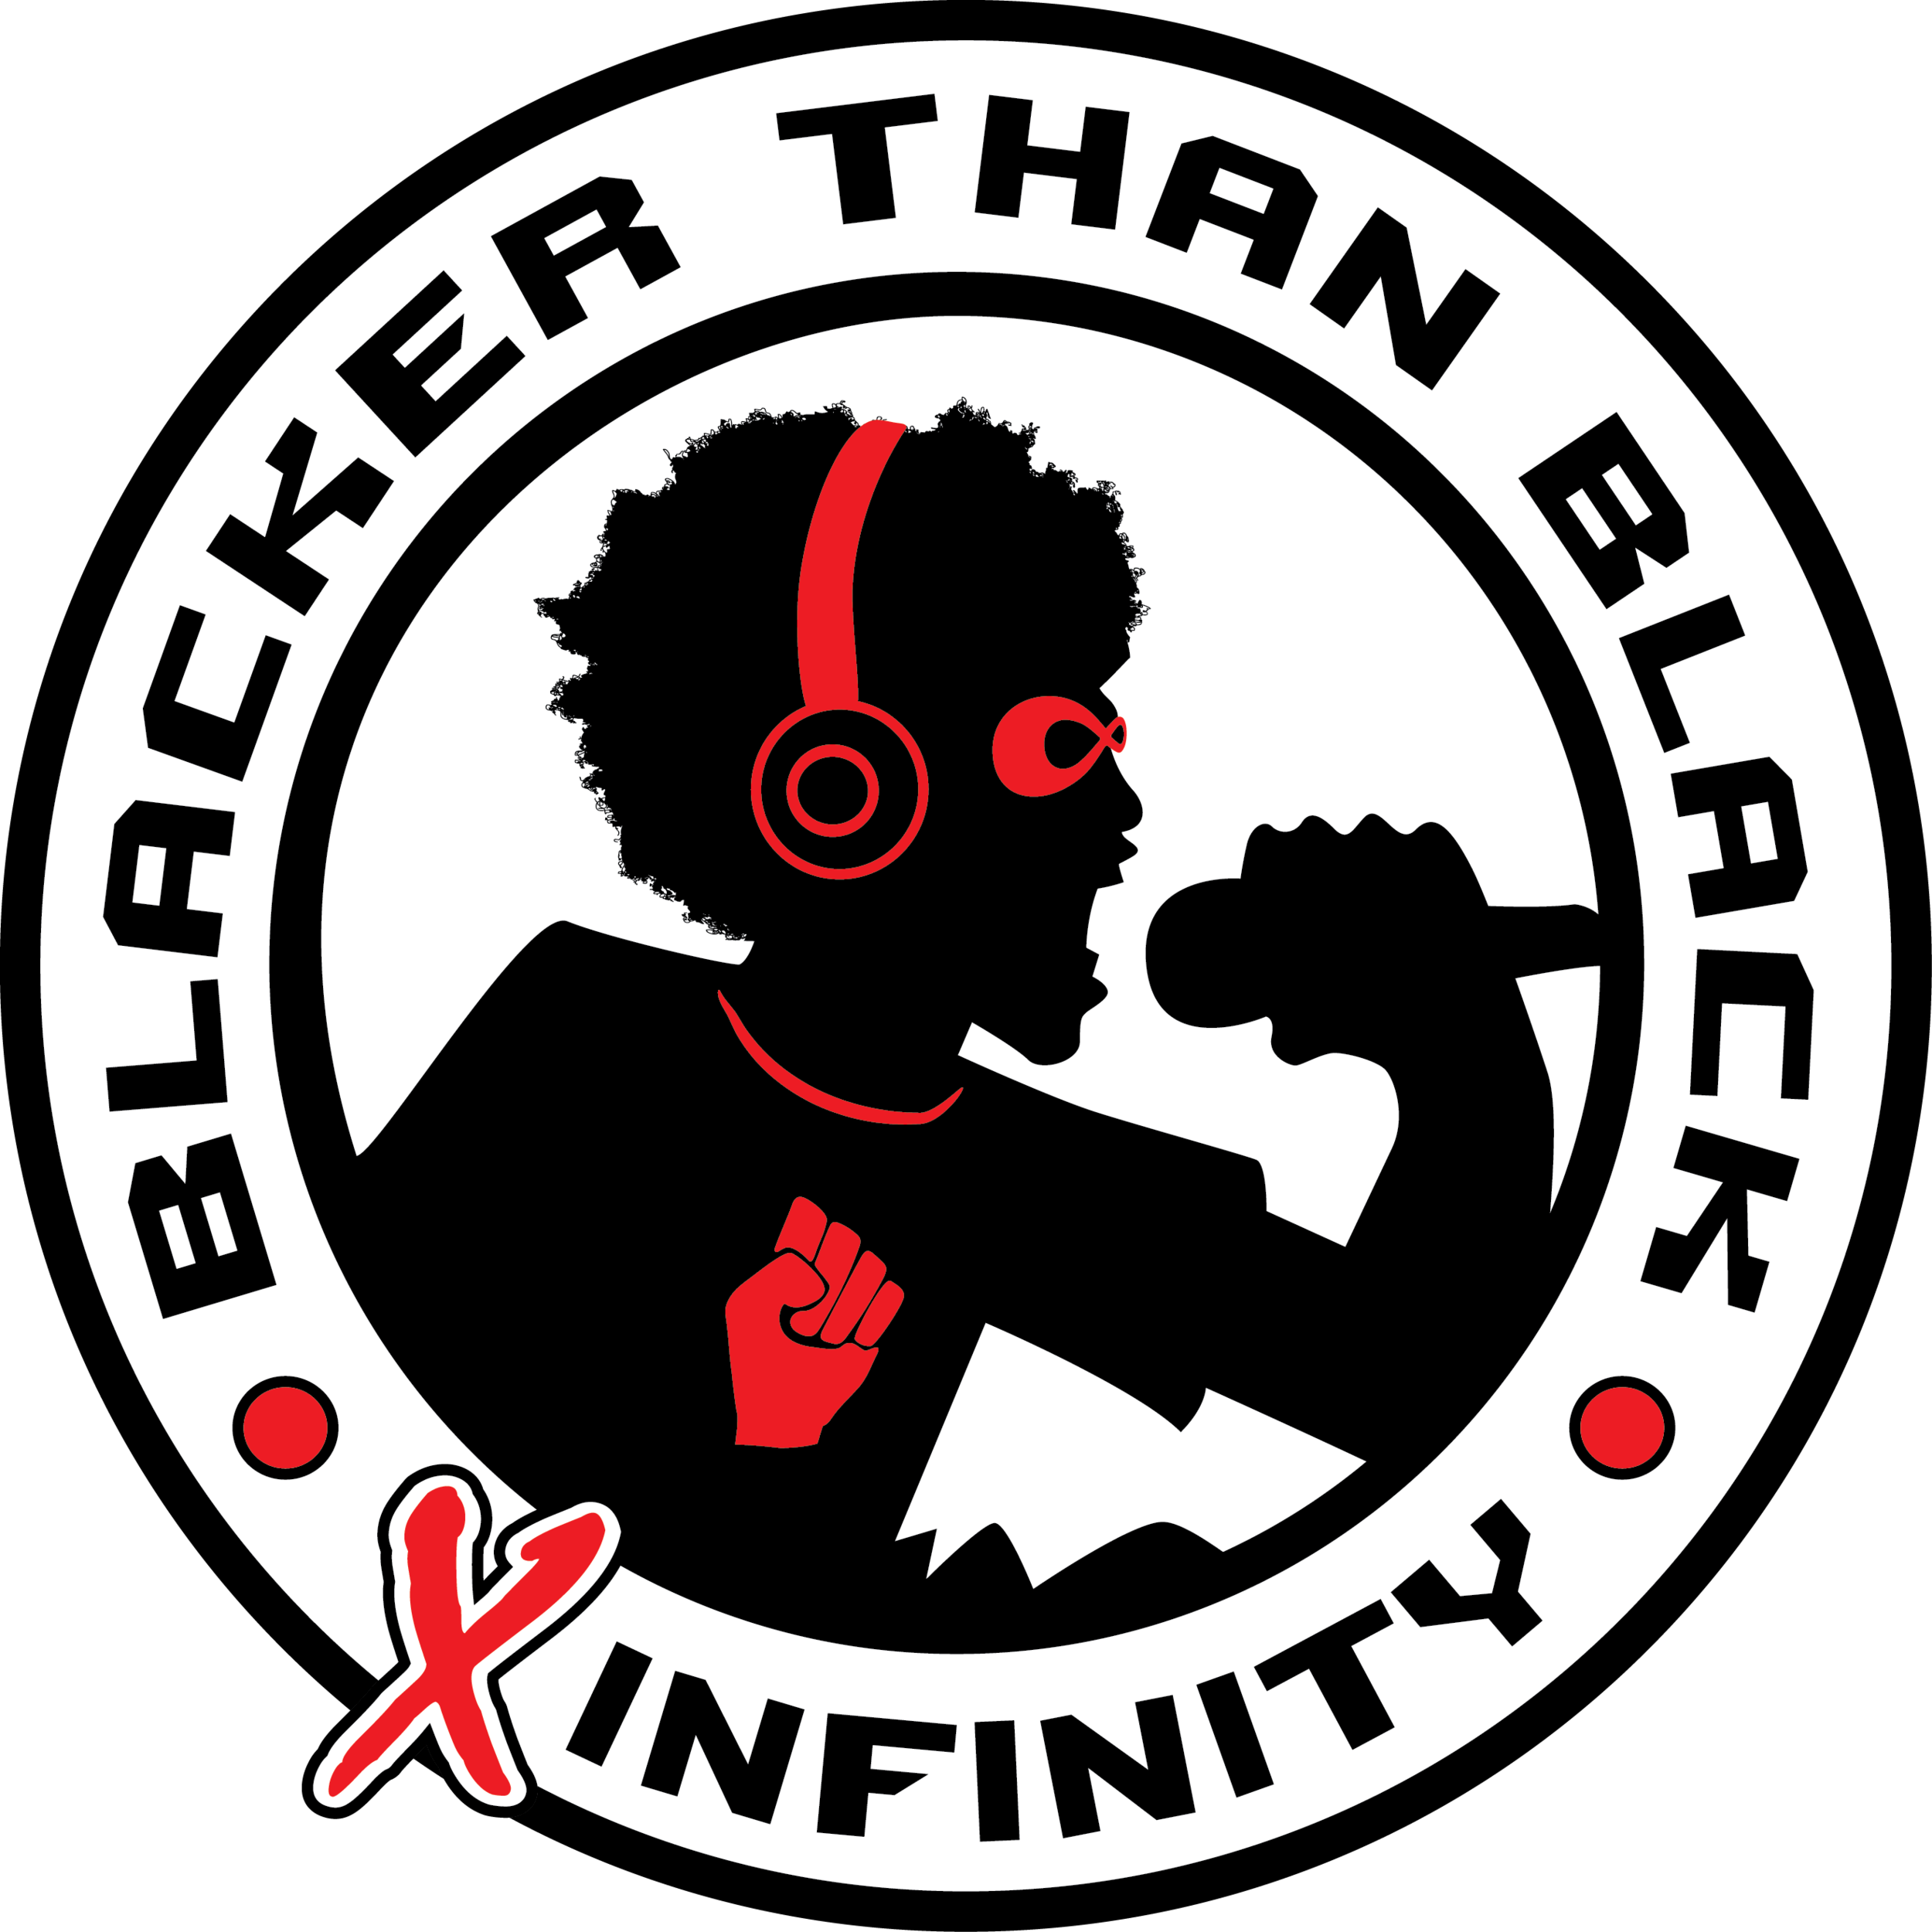 Livestream - Every Wednesday8:30 PM 10:30 PMWest Coast Blerds with attitudes dropping geek knowledge in our weekly podcast fam! Every Wednesday at 830 PSThttps://www.youtube.com/c/BlackerThanBlacktimesInfinity/live